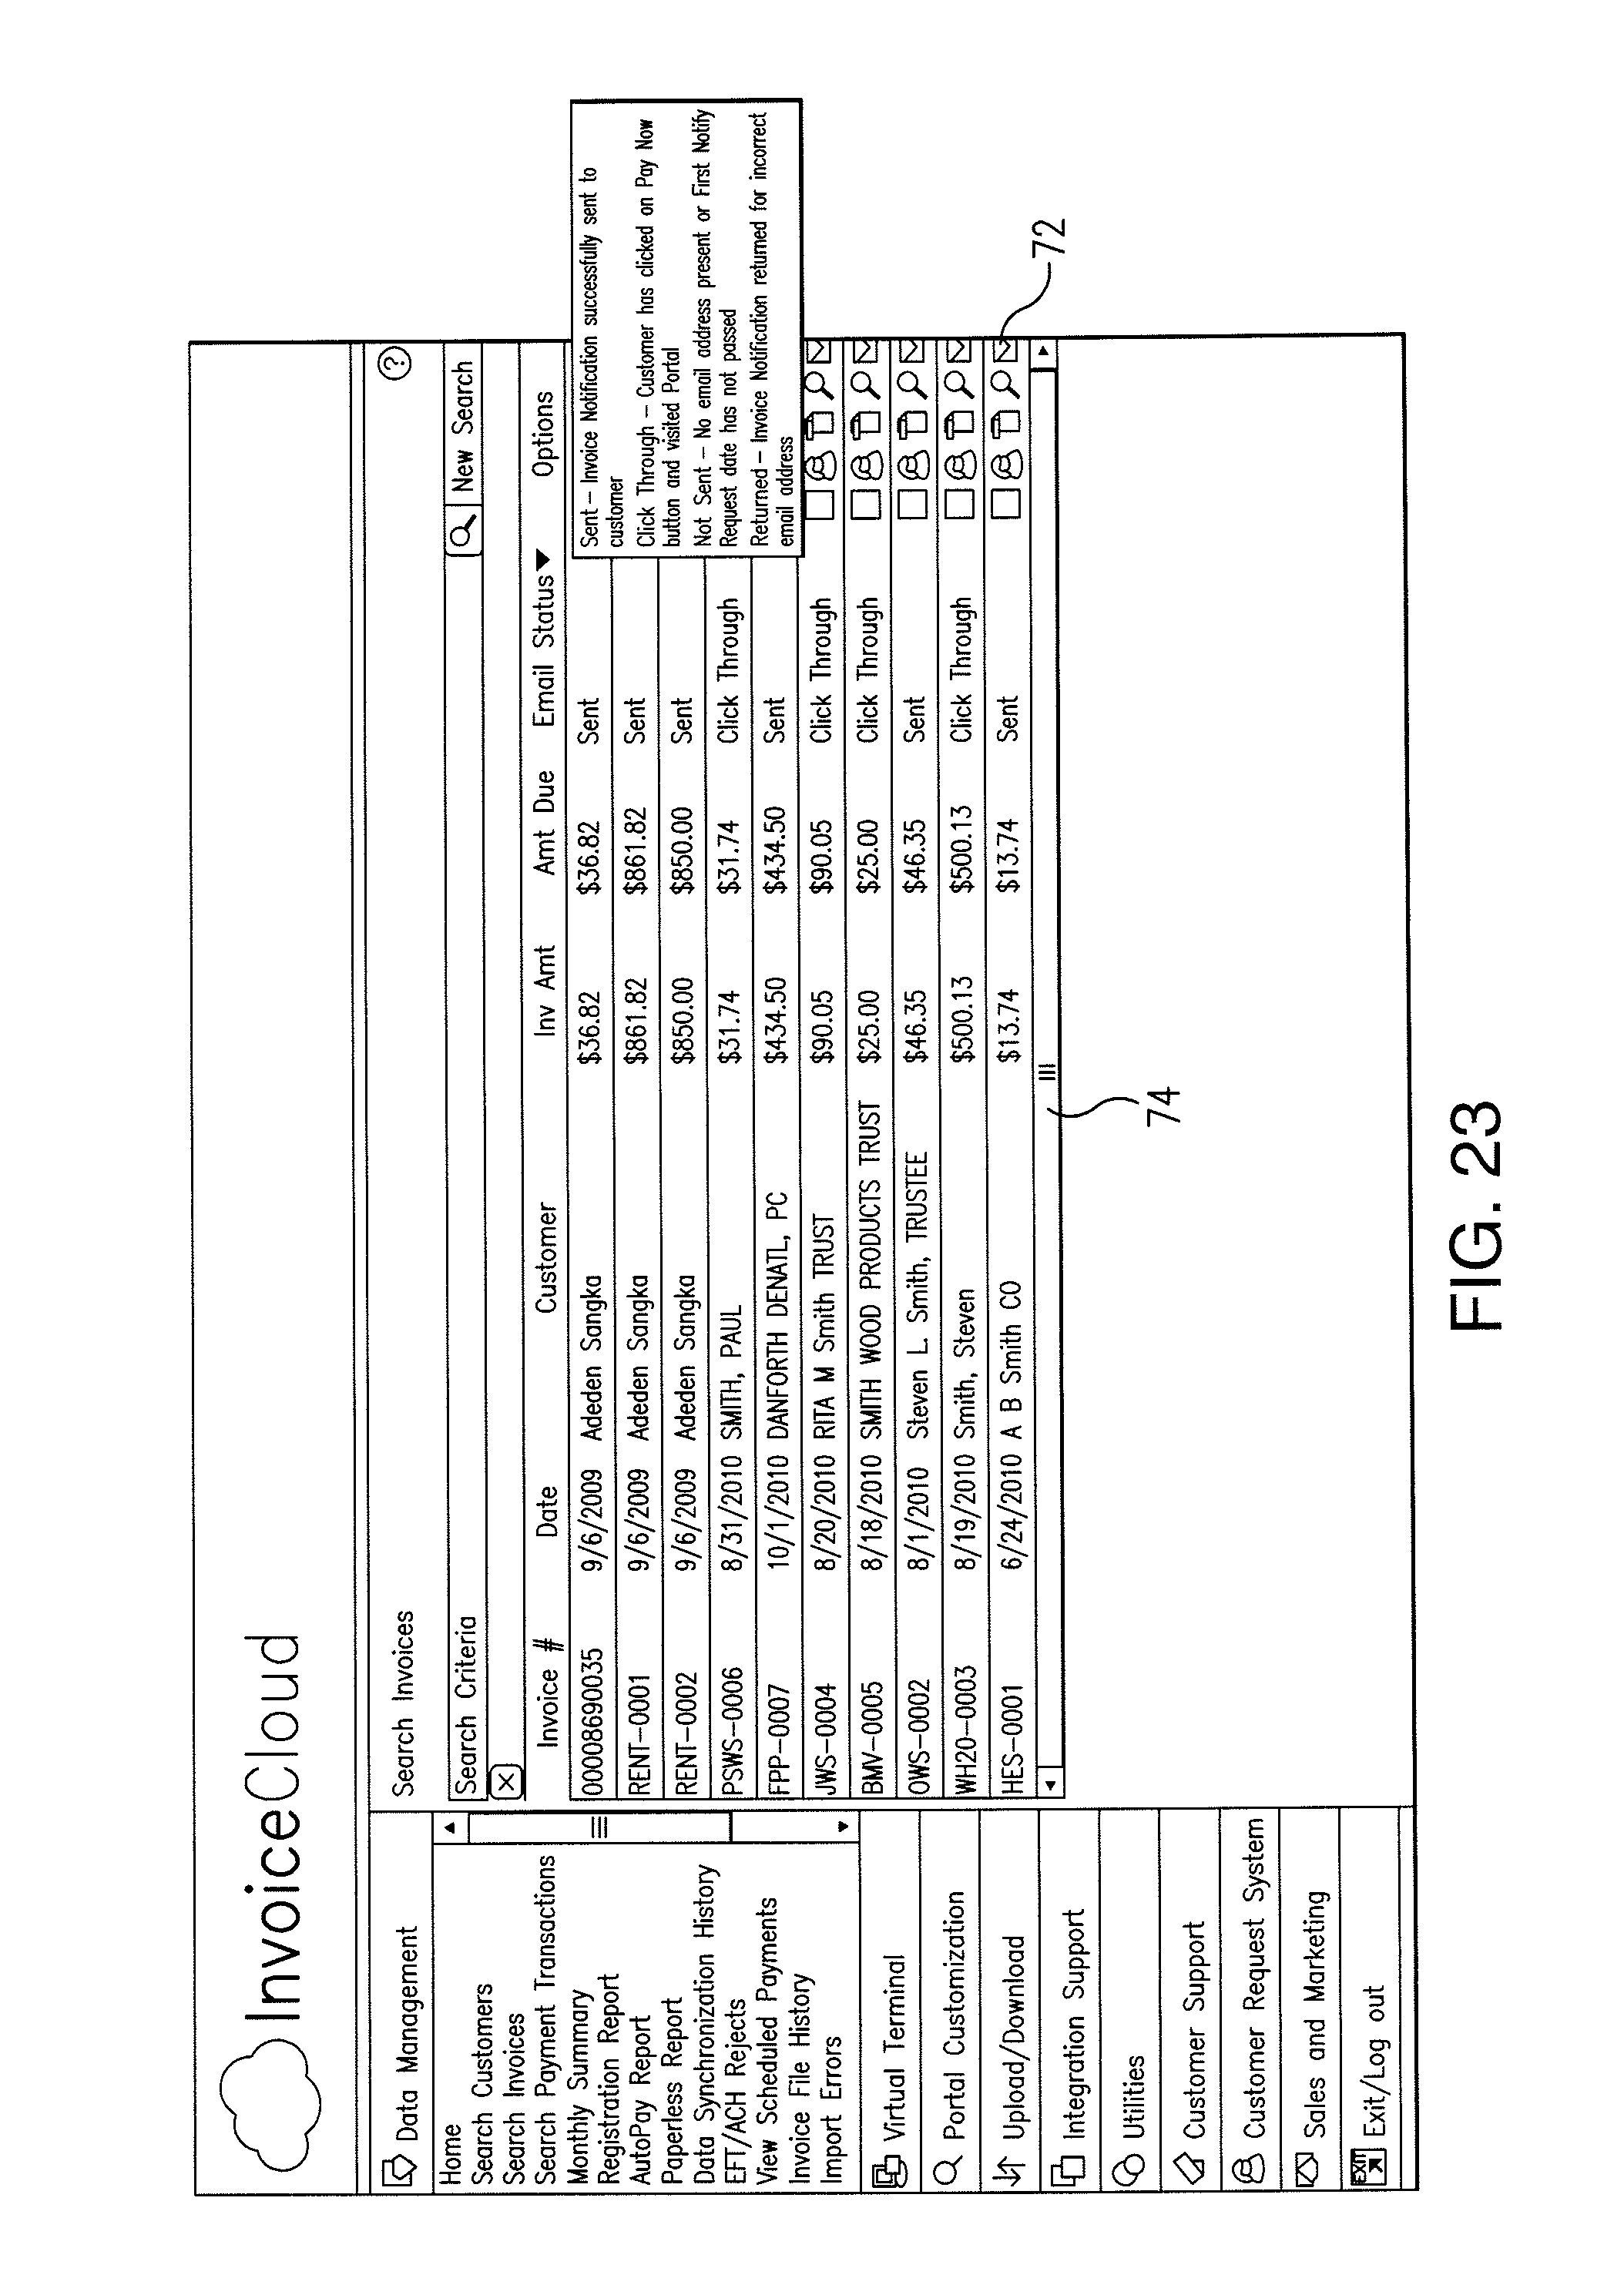 Invoice Generator Software Free Word Patent Us  Electronic Invoice Presentation And Payment  Invoice Requirements Excel with Honda Accord Invoice Price 2015 Pdf Patent Drawing Statement Of Invoices Word